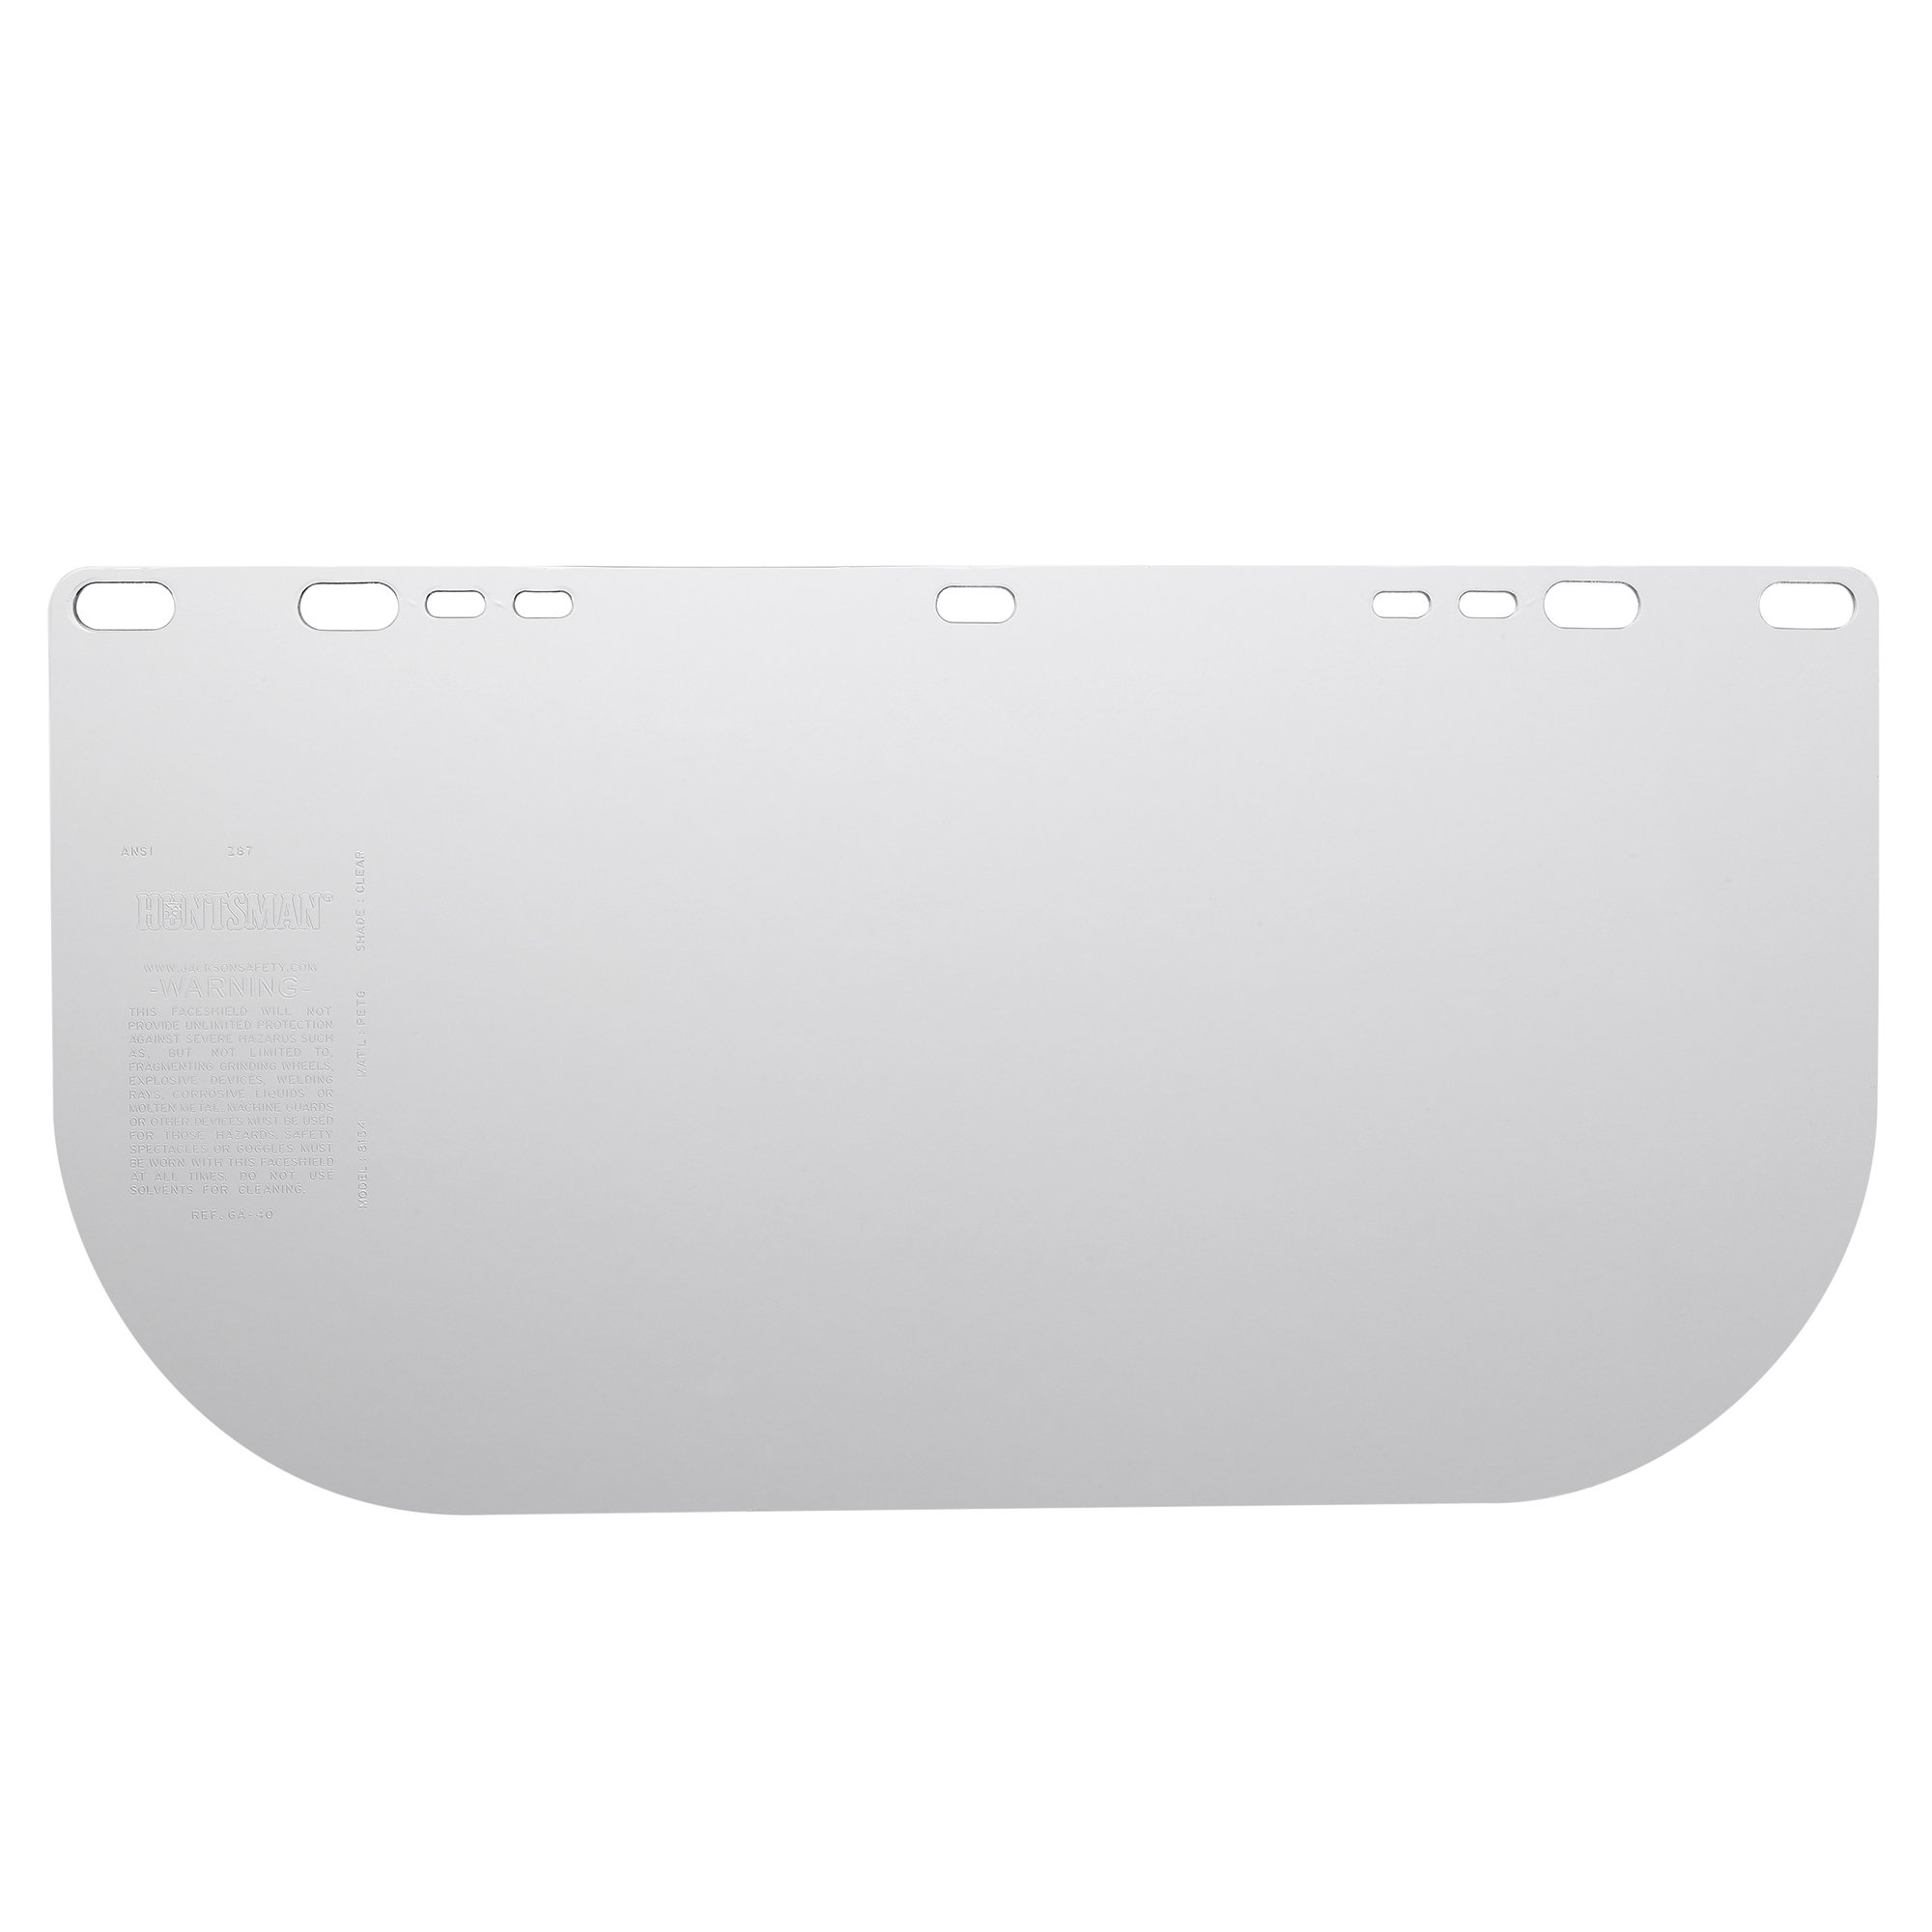 "Jackson Safety F10 PETG Face Shield (29104), 8"" x 15.5"" Clear, Disposable Face Protection, 100 Shields / Case"